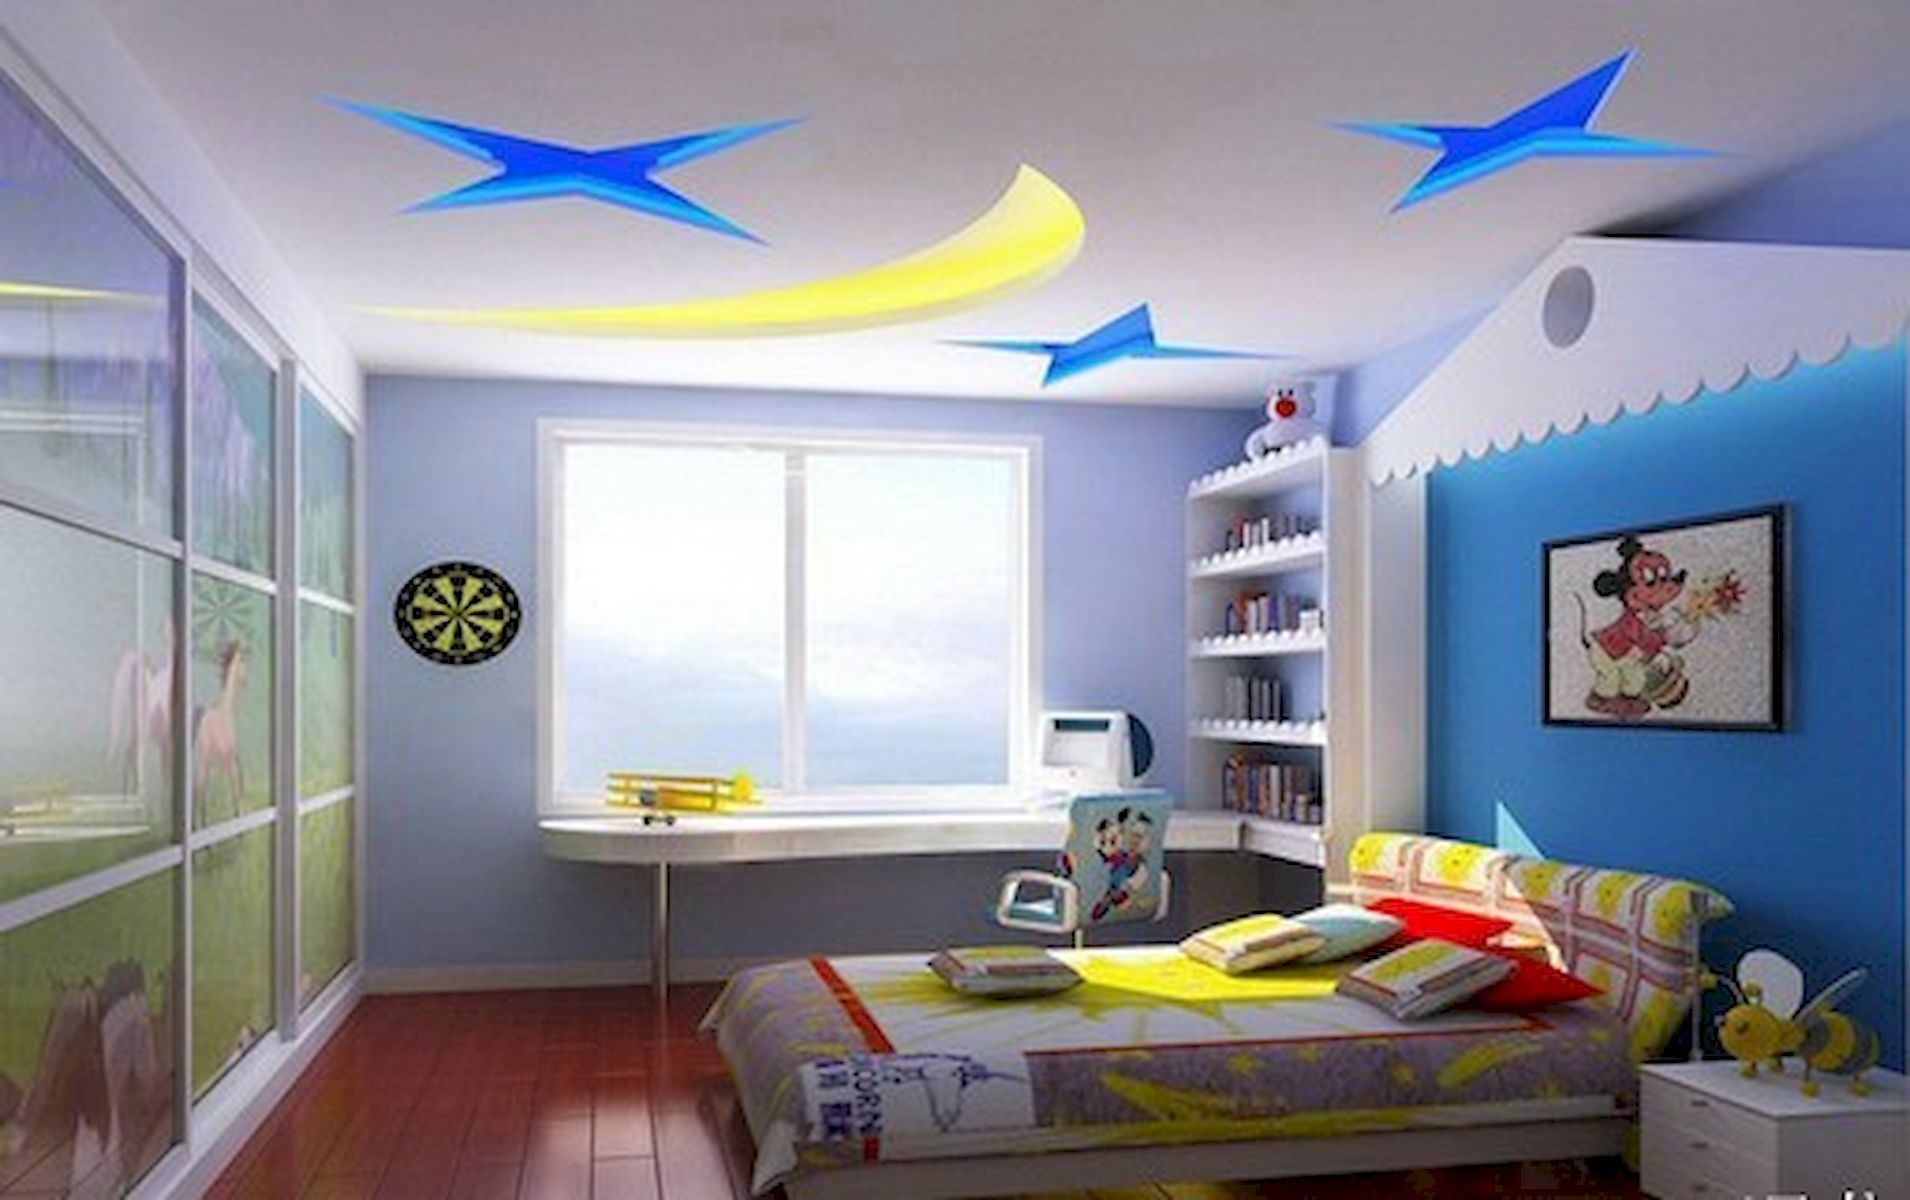 40 Awesome Wall Painting Ideas For Home (With images) | Ceiling ...